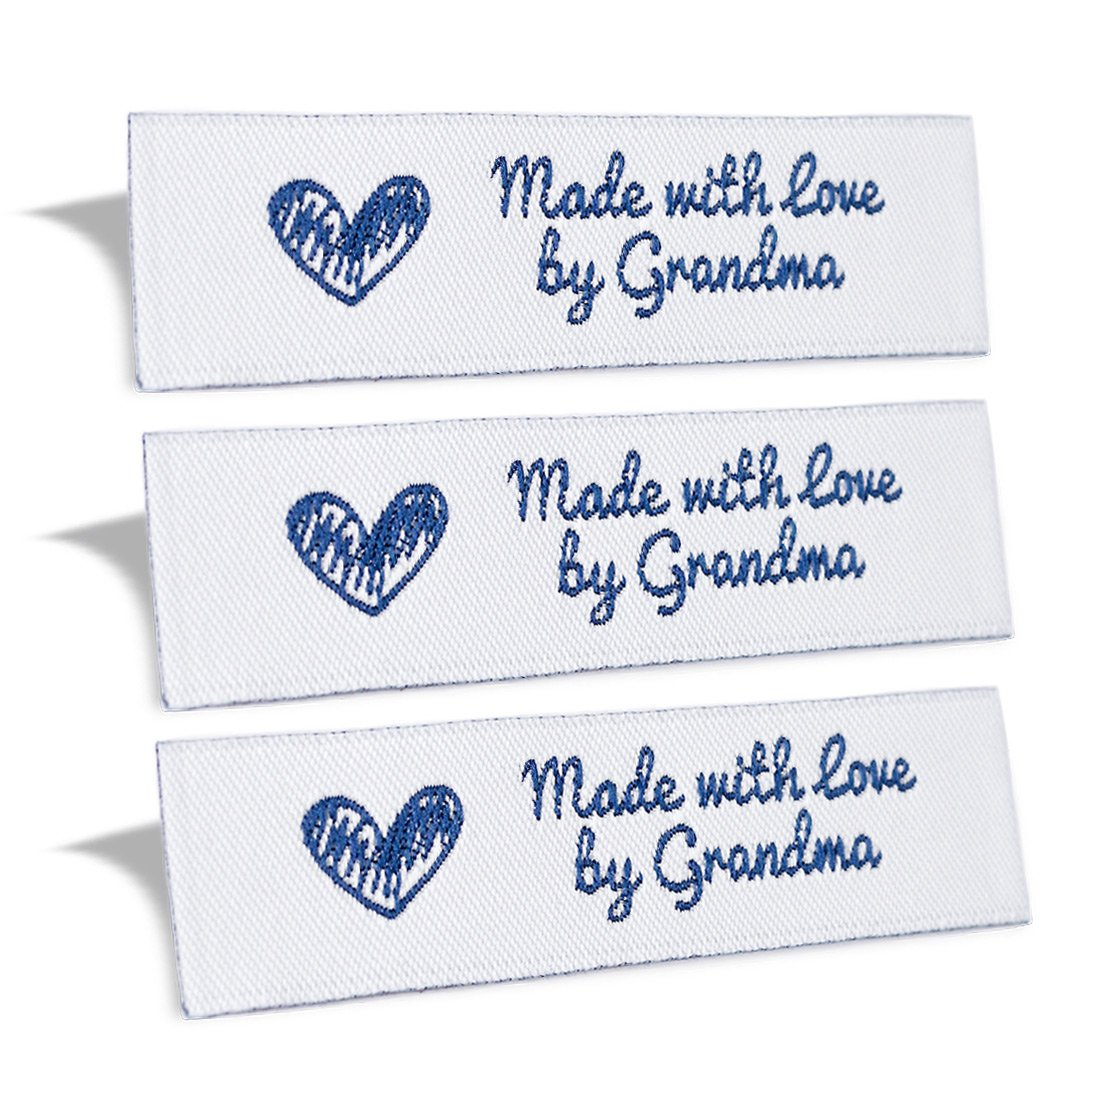 Made with love tags